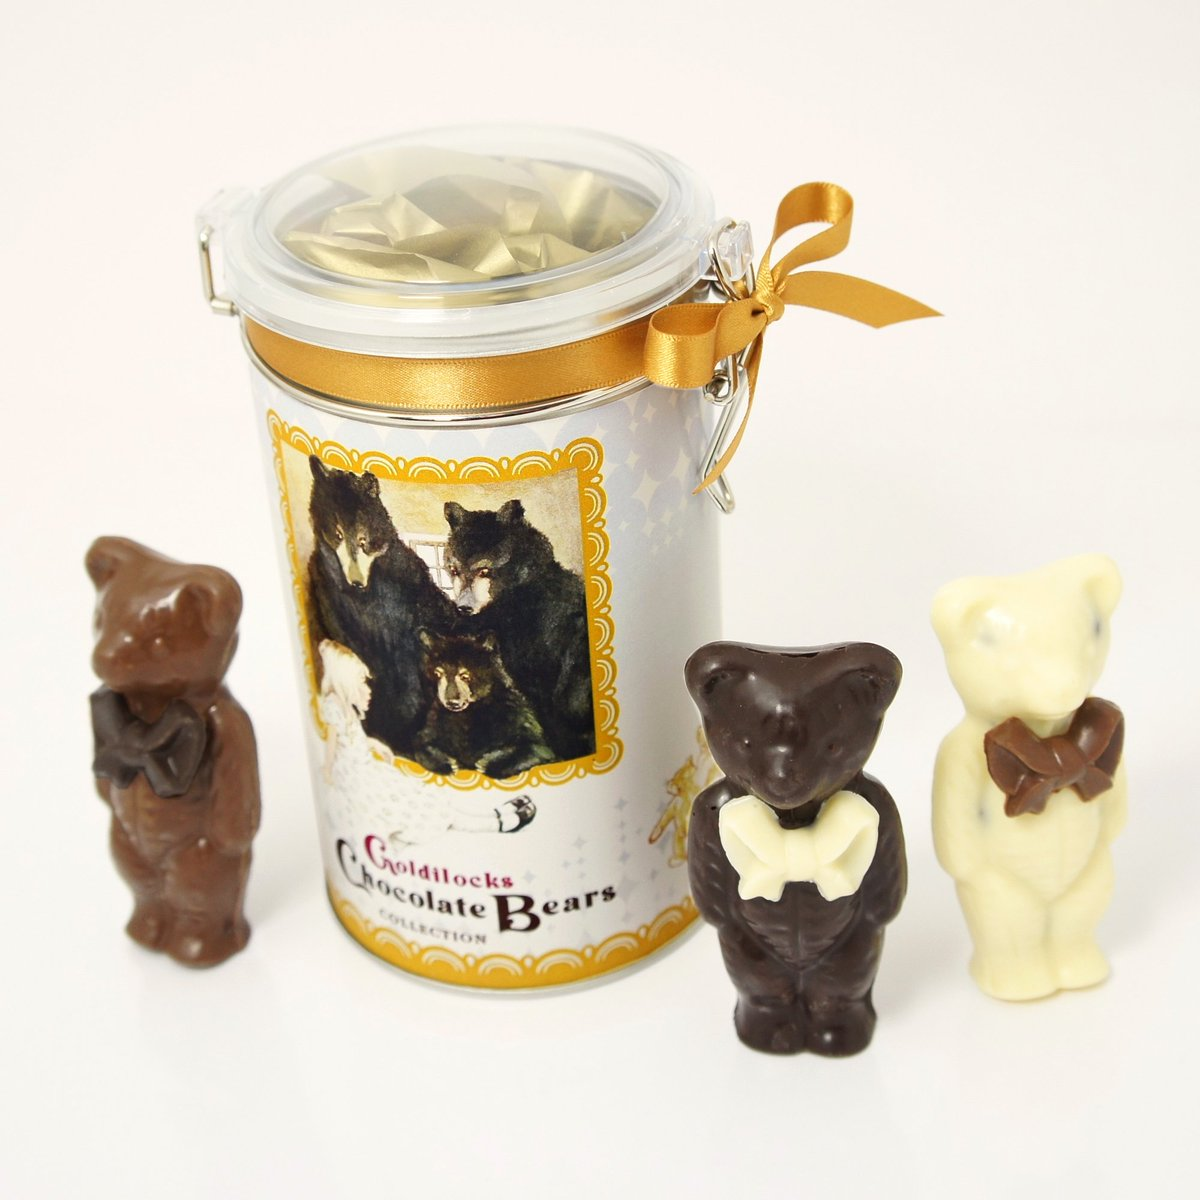 #winitwednesday RT & Follow @FairyTGourmet to #win set of bears at 14K. https://t.co/lIYspj39dg https://t.co/scNsbimQSk